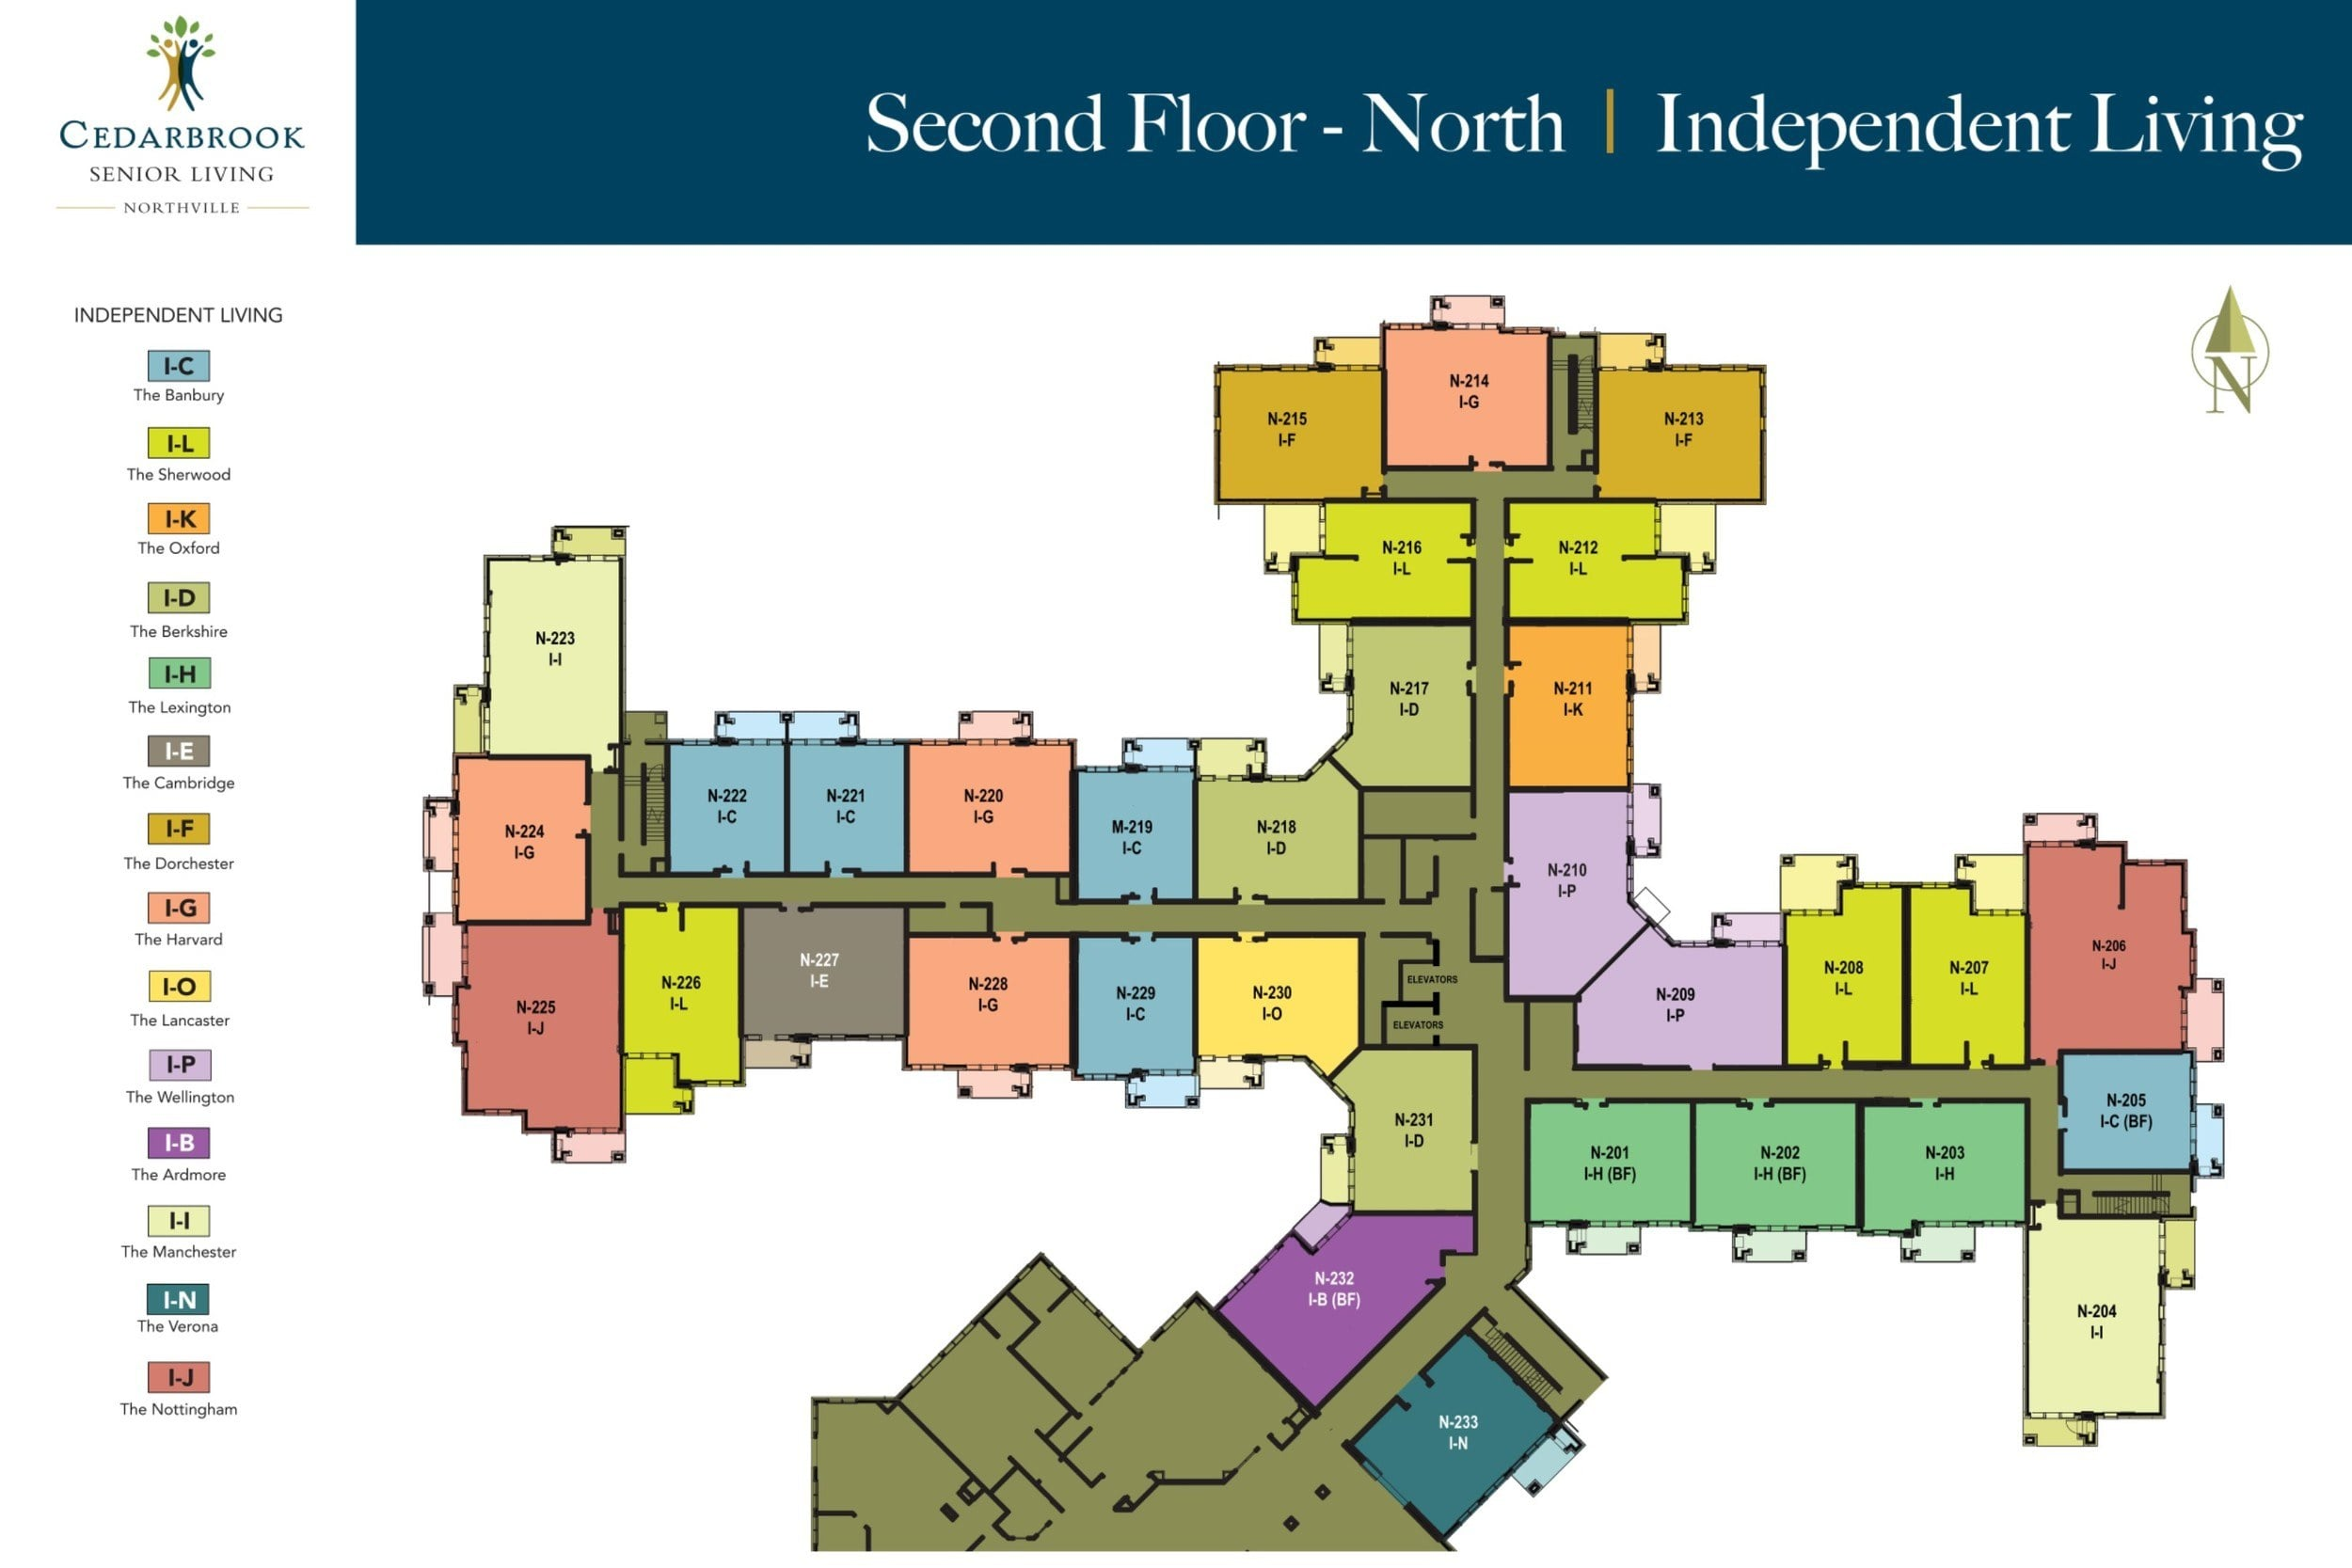 Second Floor North - Independent Living